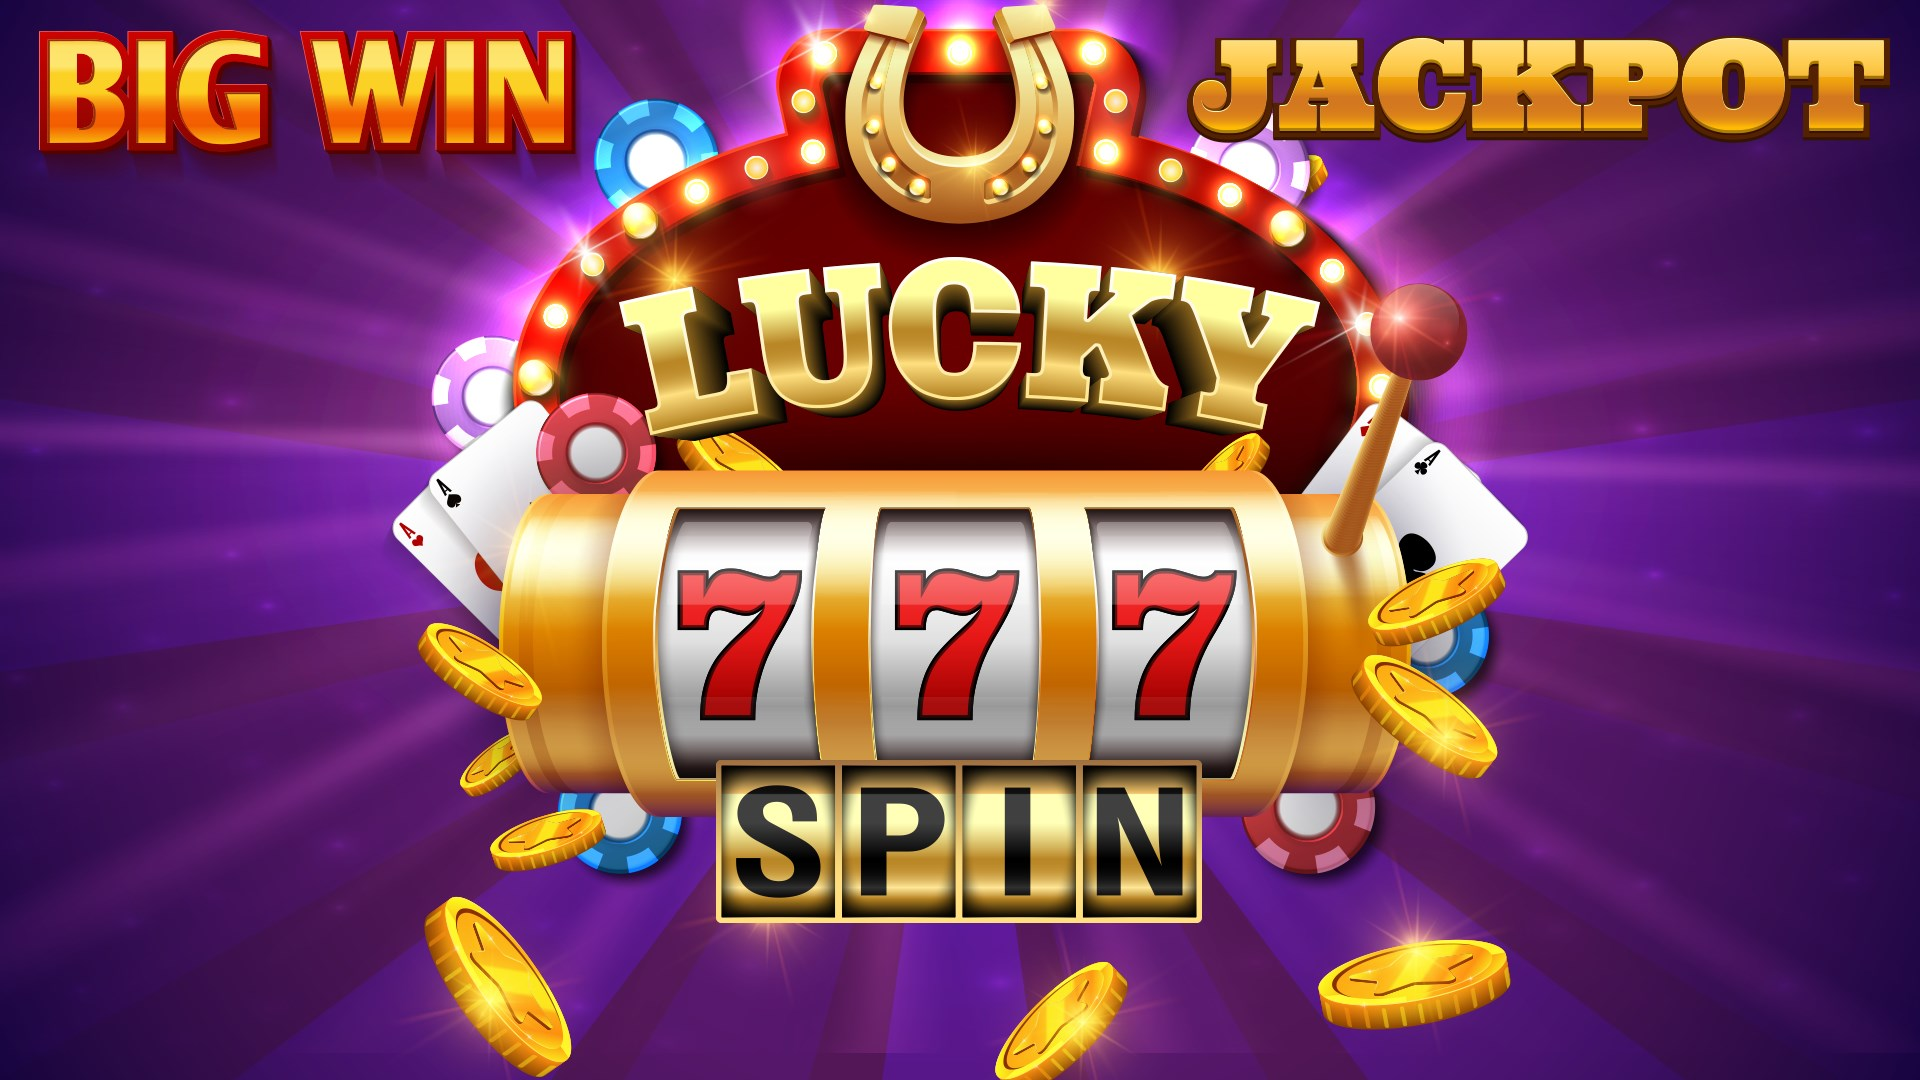 Why Any Online Gambling Company Does Faces Problem In Proving Free Slots?